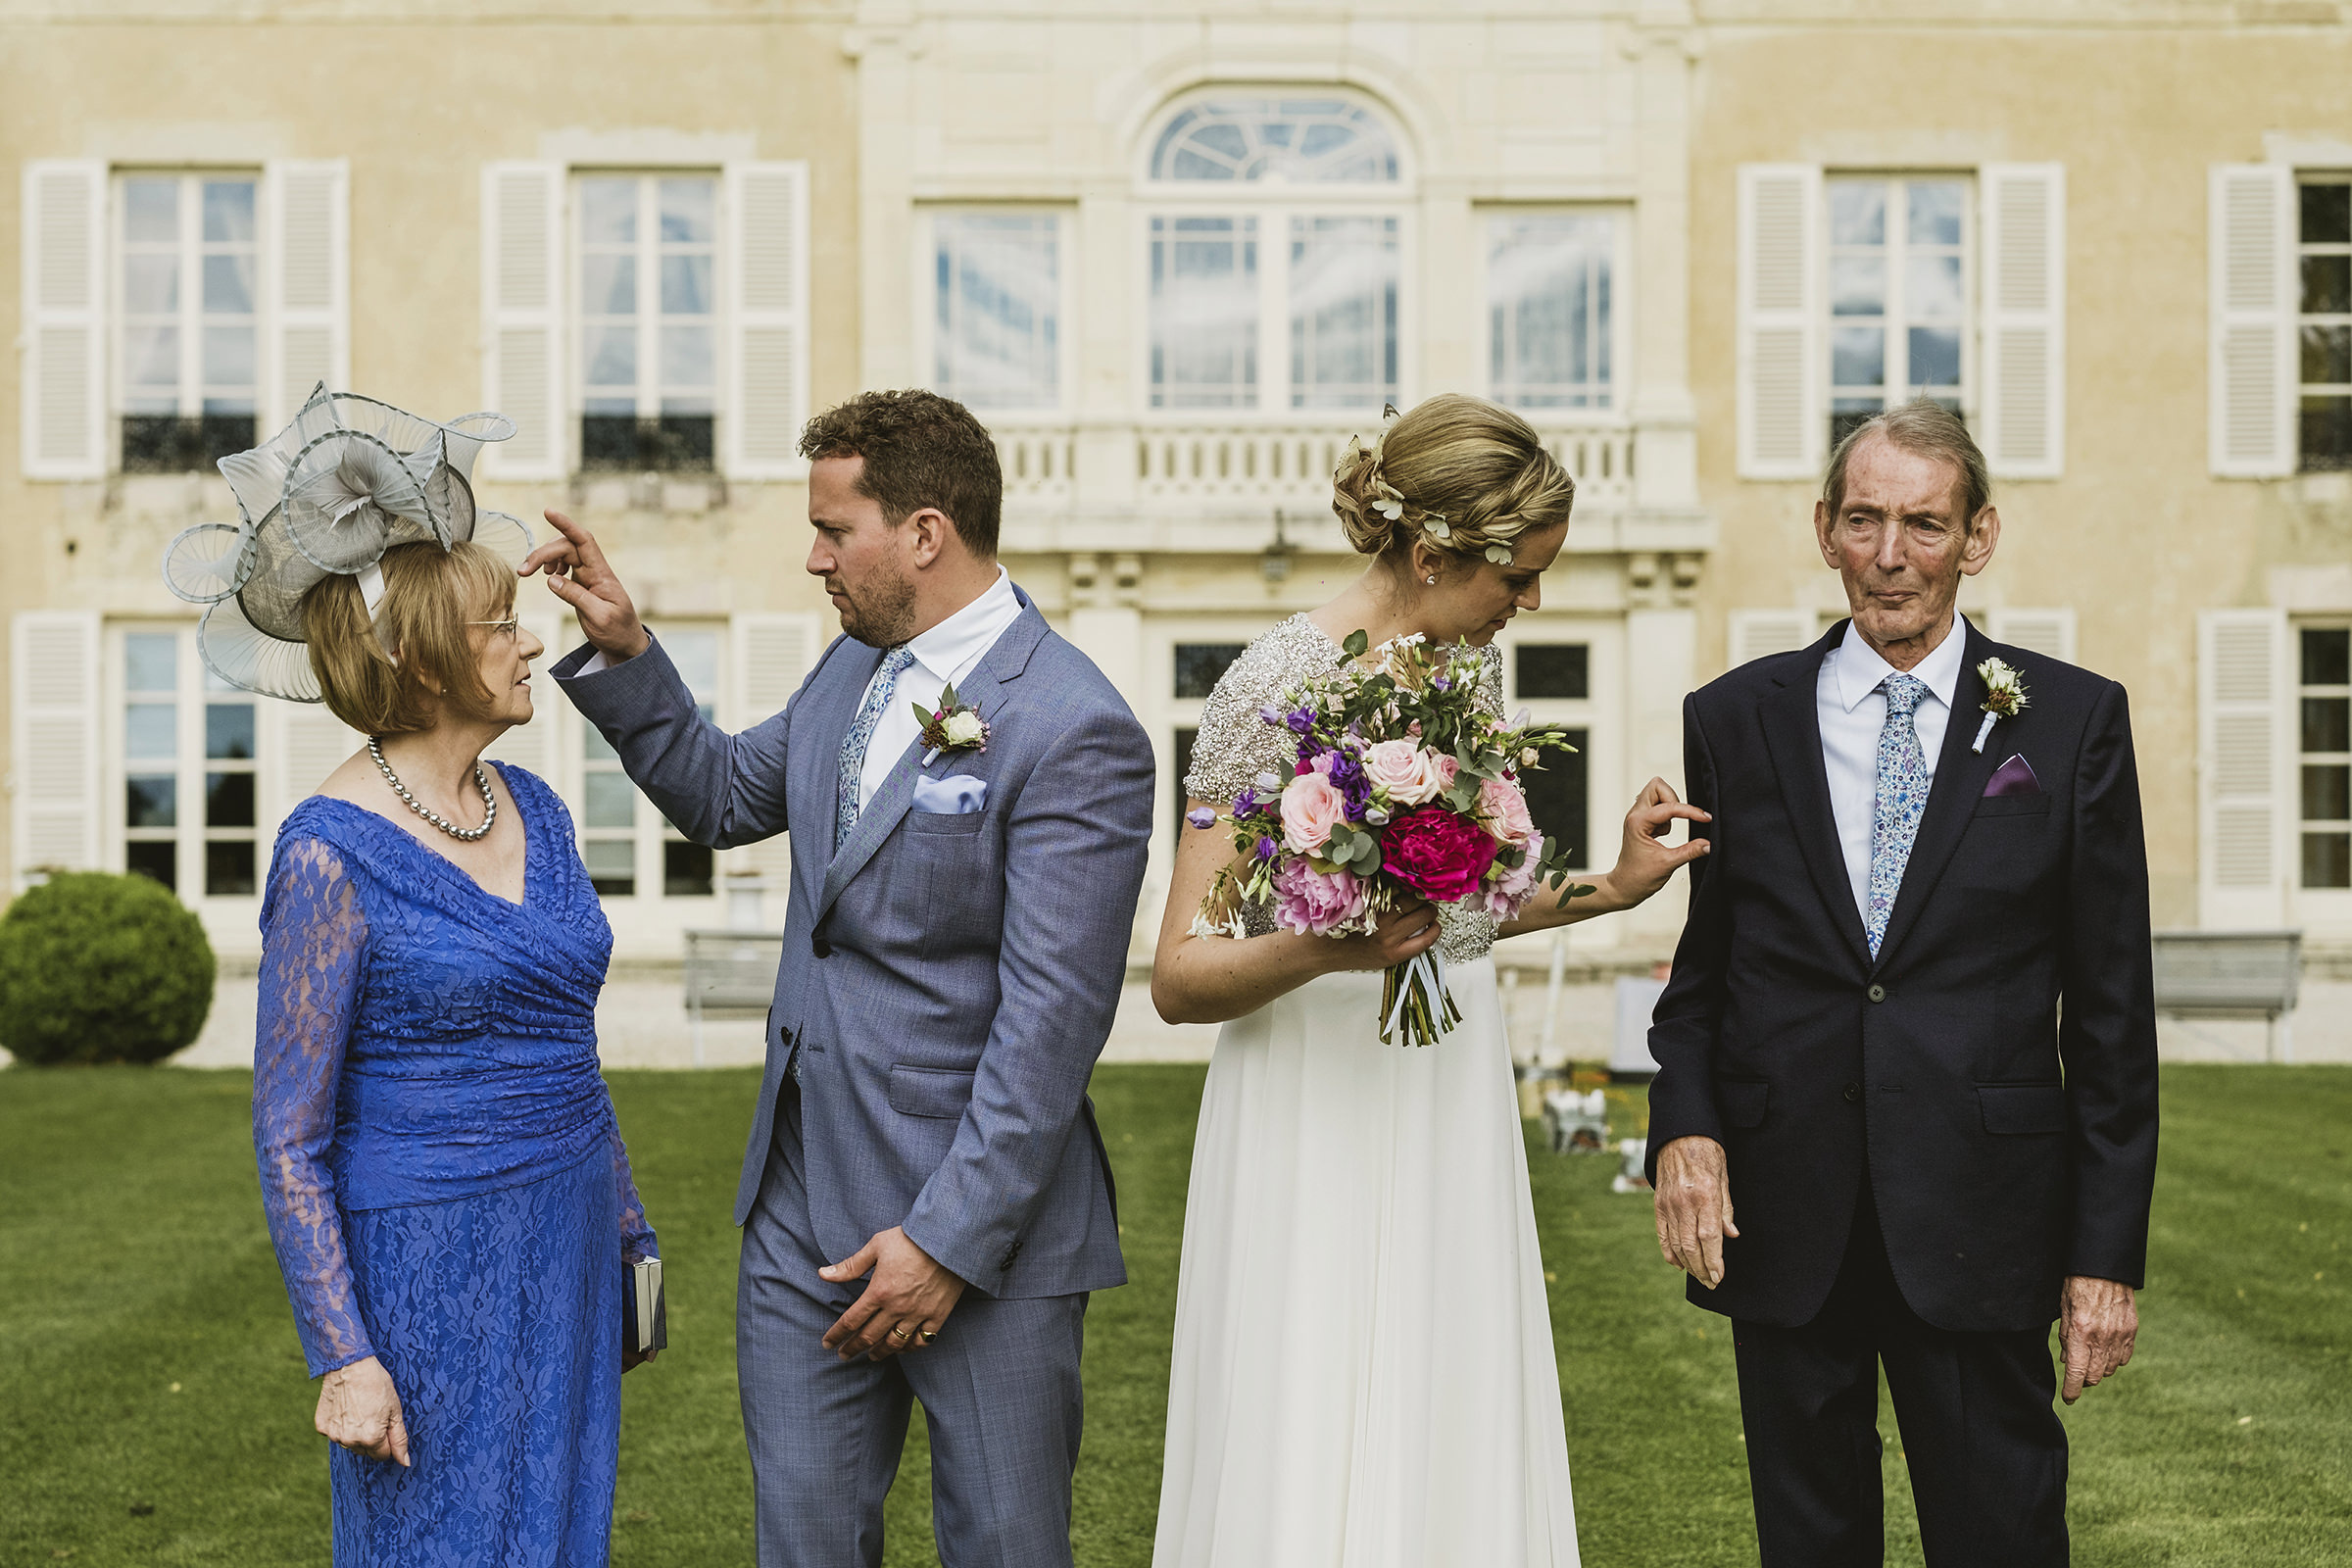 50-best-documentary-wedding-photos-of-the-decade-photo-by-york-place-studios